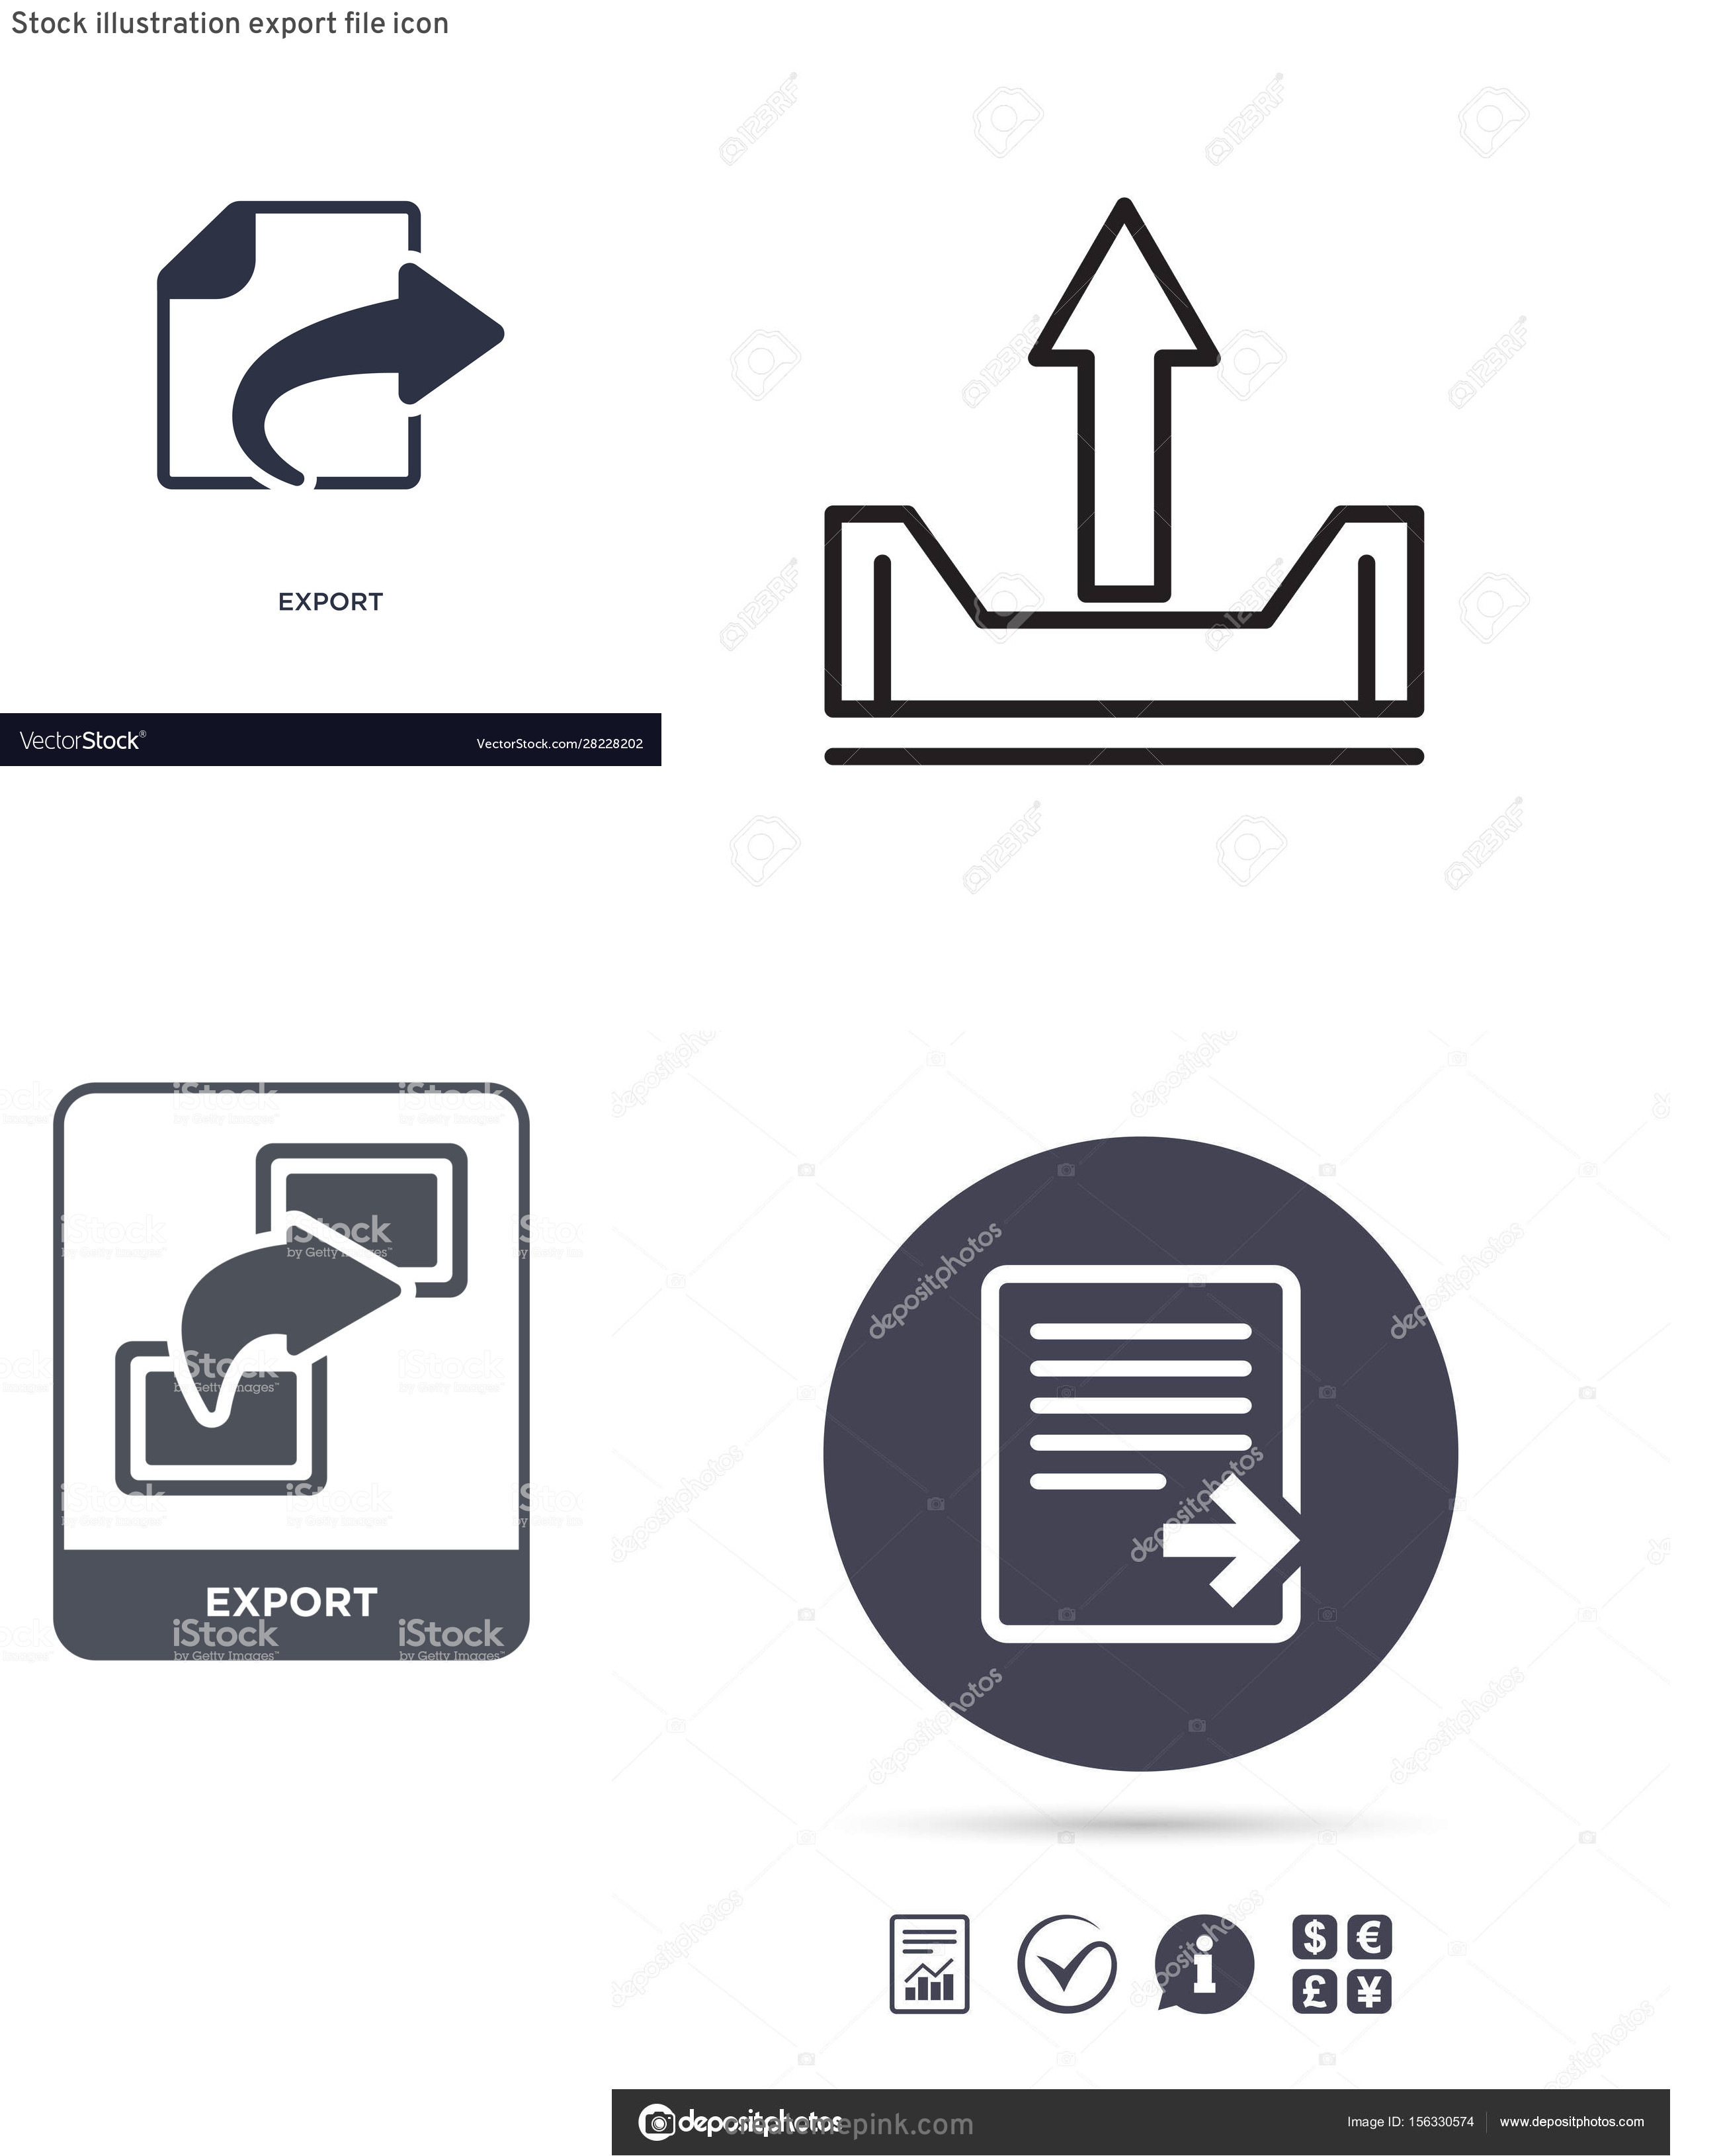 Export Icon Vector: Stock Illustration Export File Icon